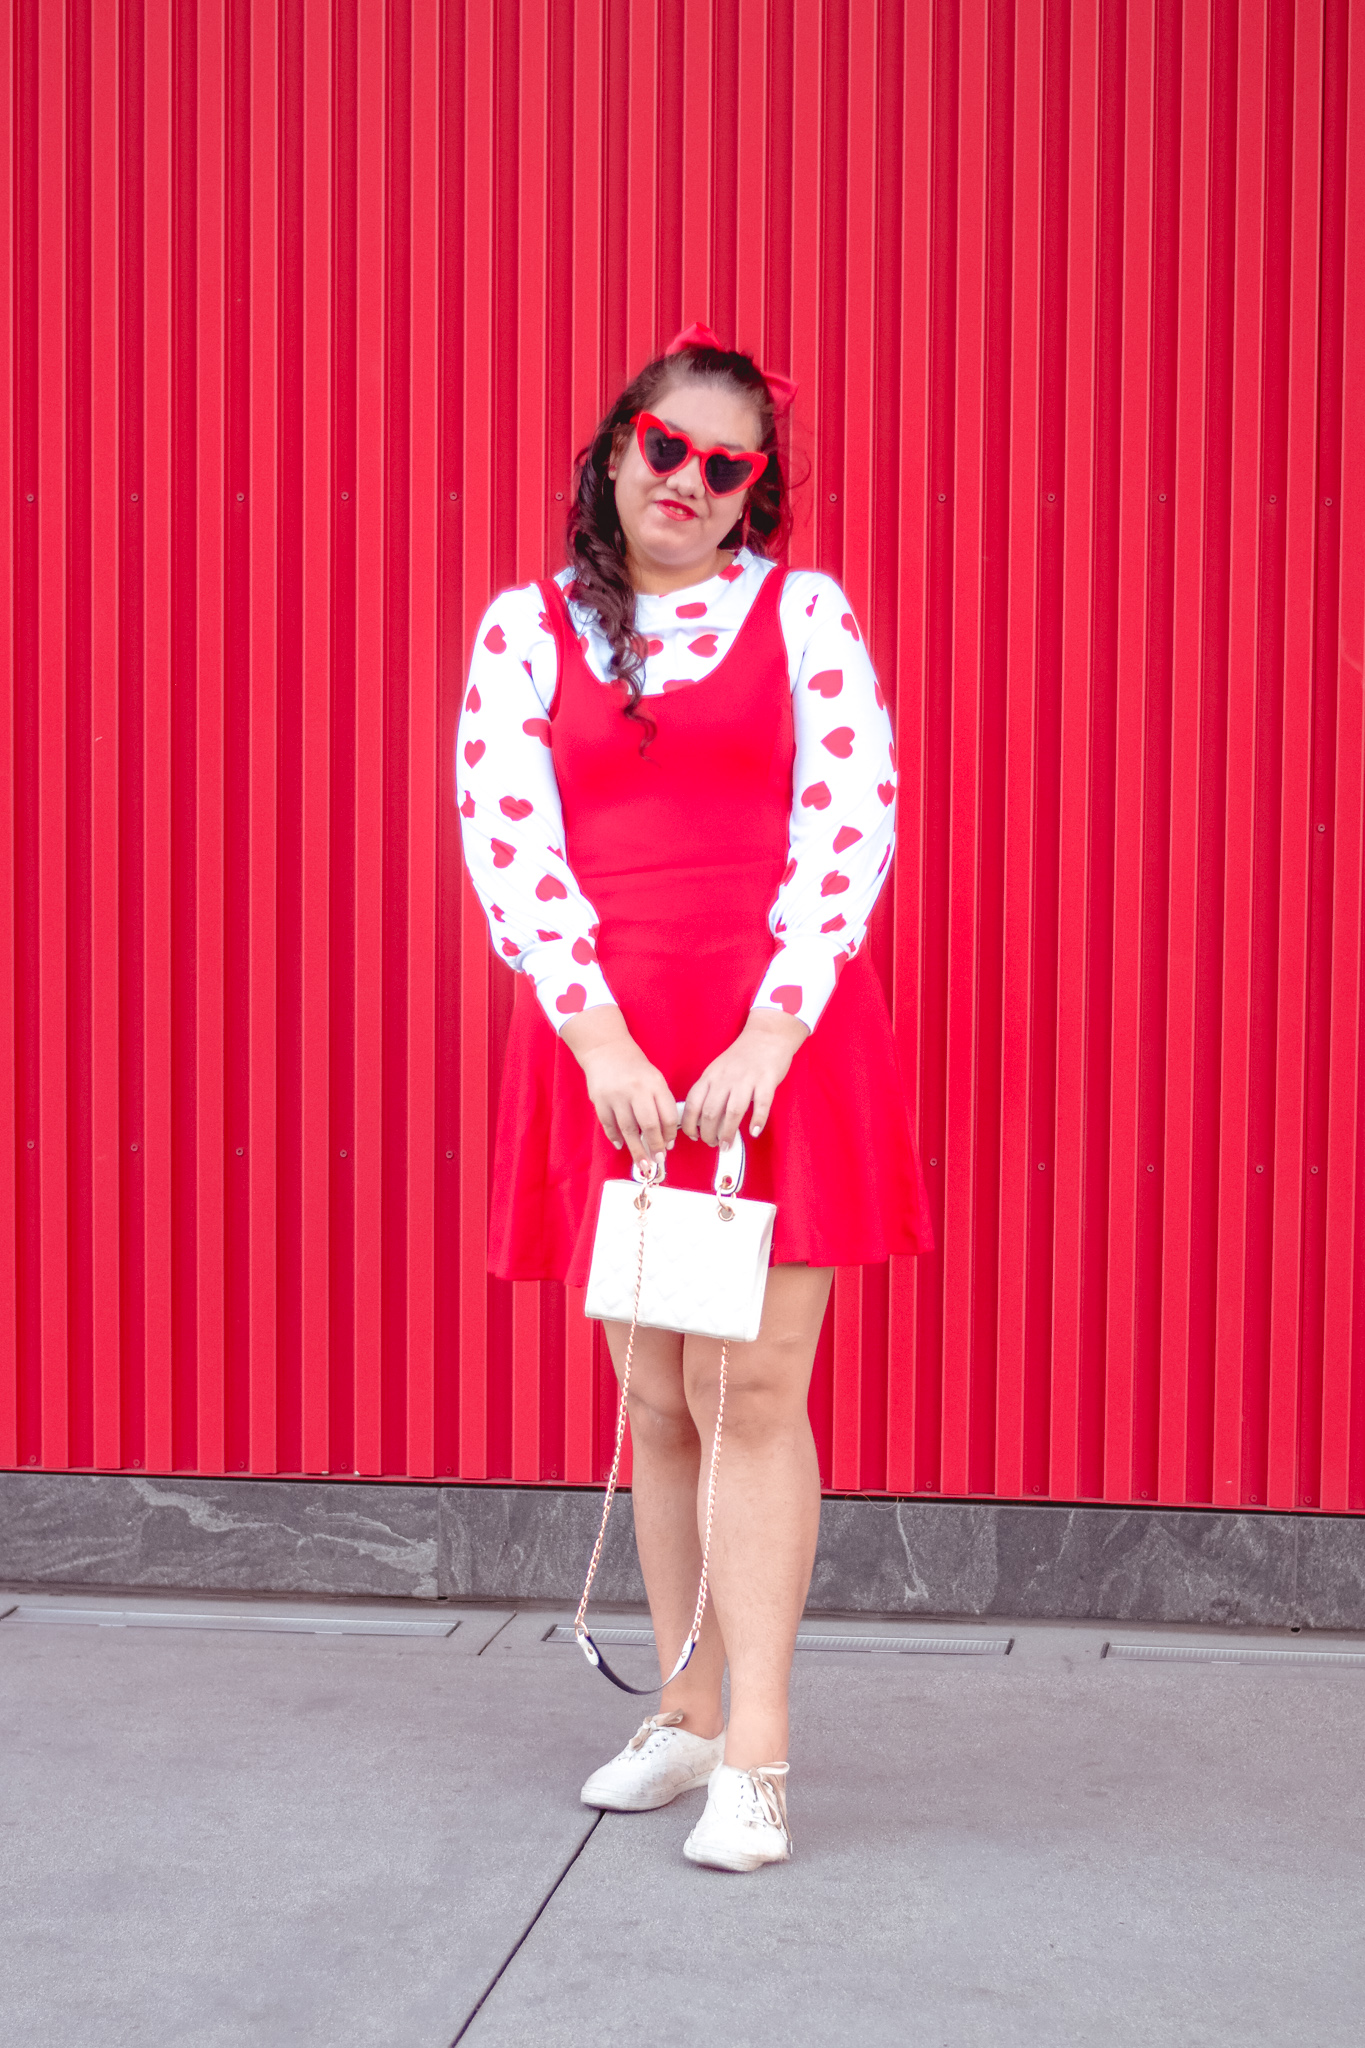 A Girly Valentine's Day Themed Outfit